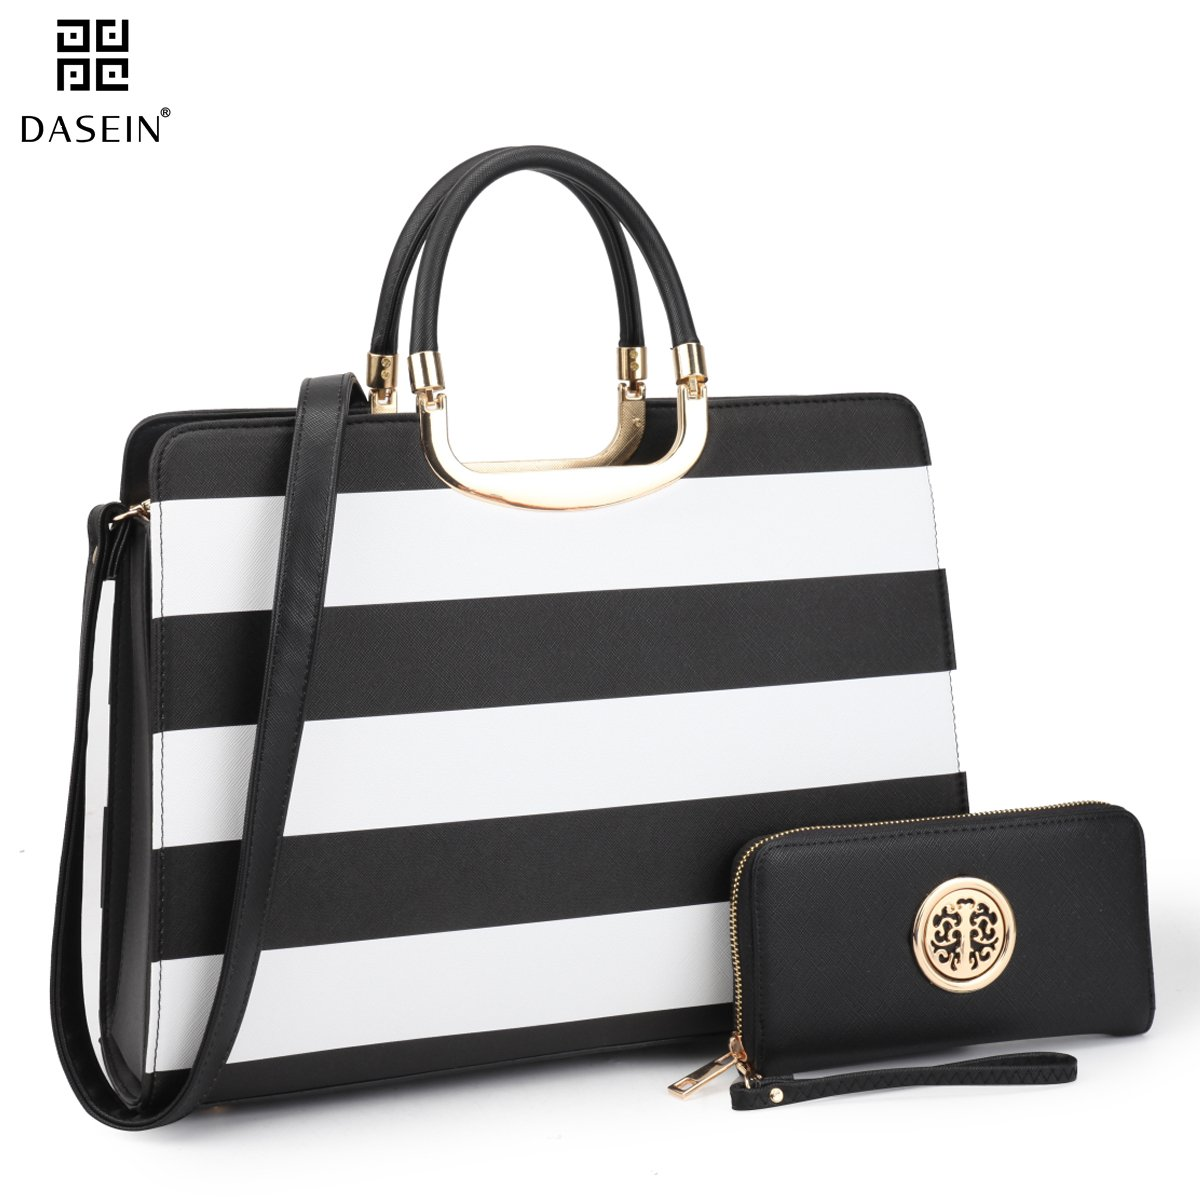 Dasein Designer Purse Stripes Satchel Handbag PU Leather Purse Top Handle Handbags (XL2828 stripe 2PCs- Black/White)